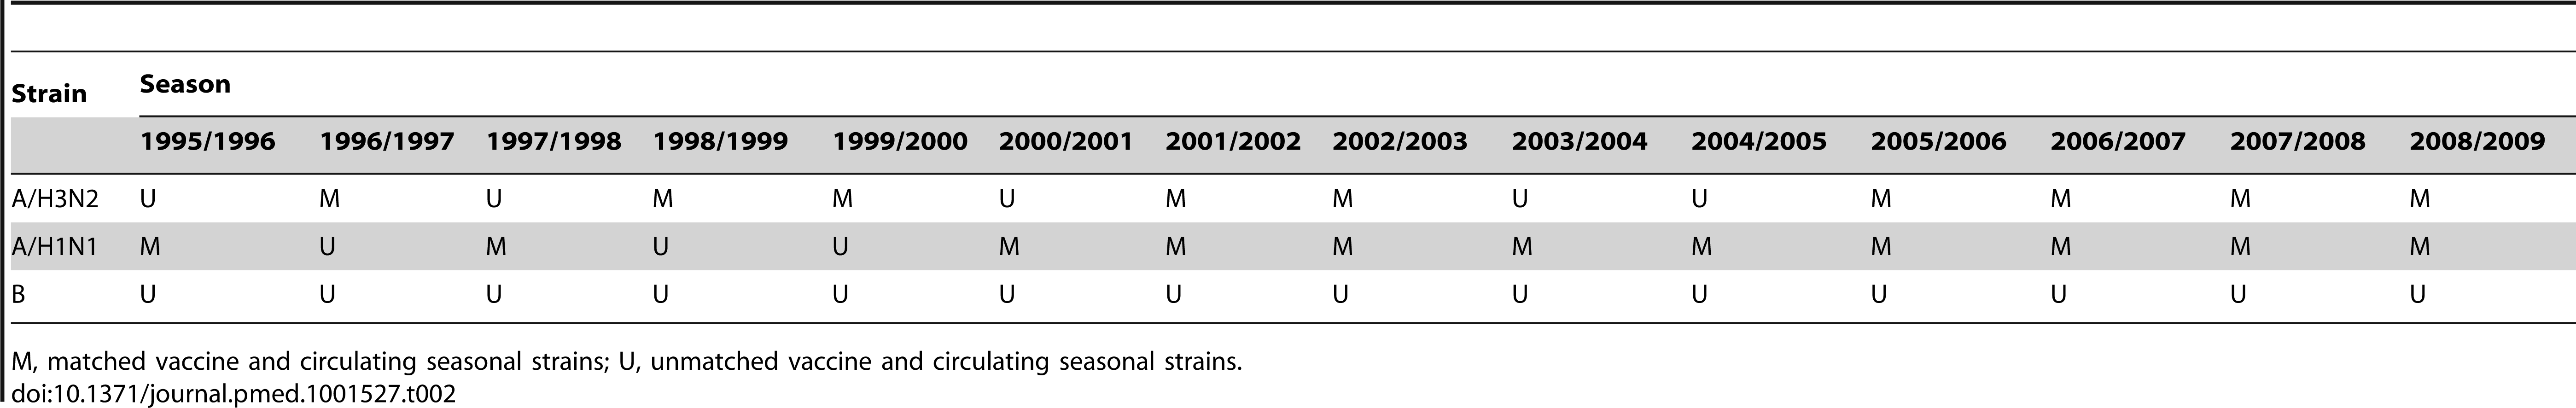 Match of the vaccine strains to the circulating seasonal strains during the period 1995/1996 to 2008/2009.